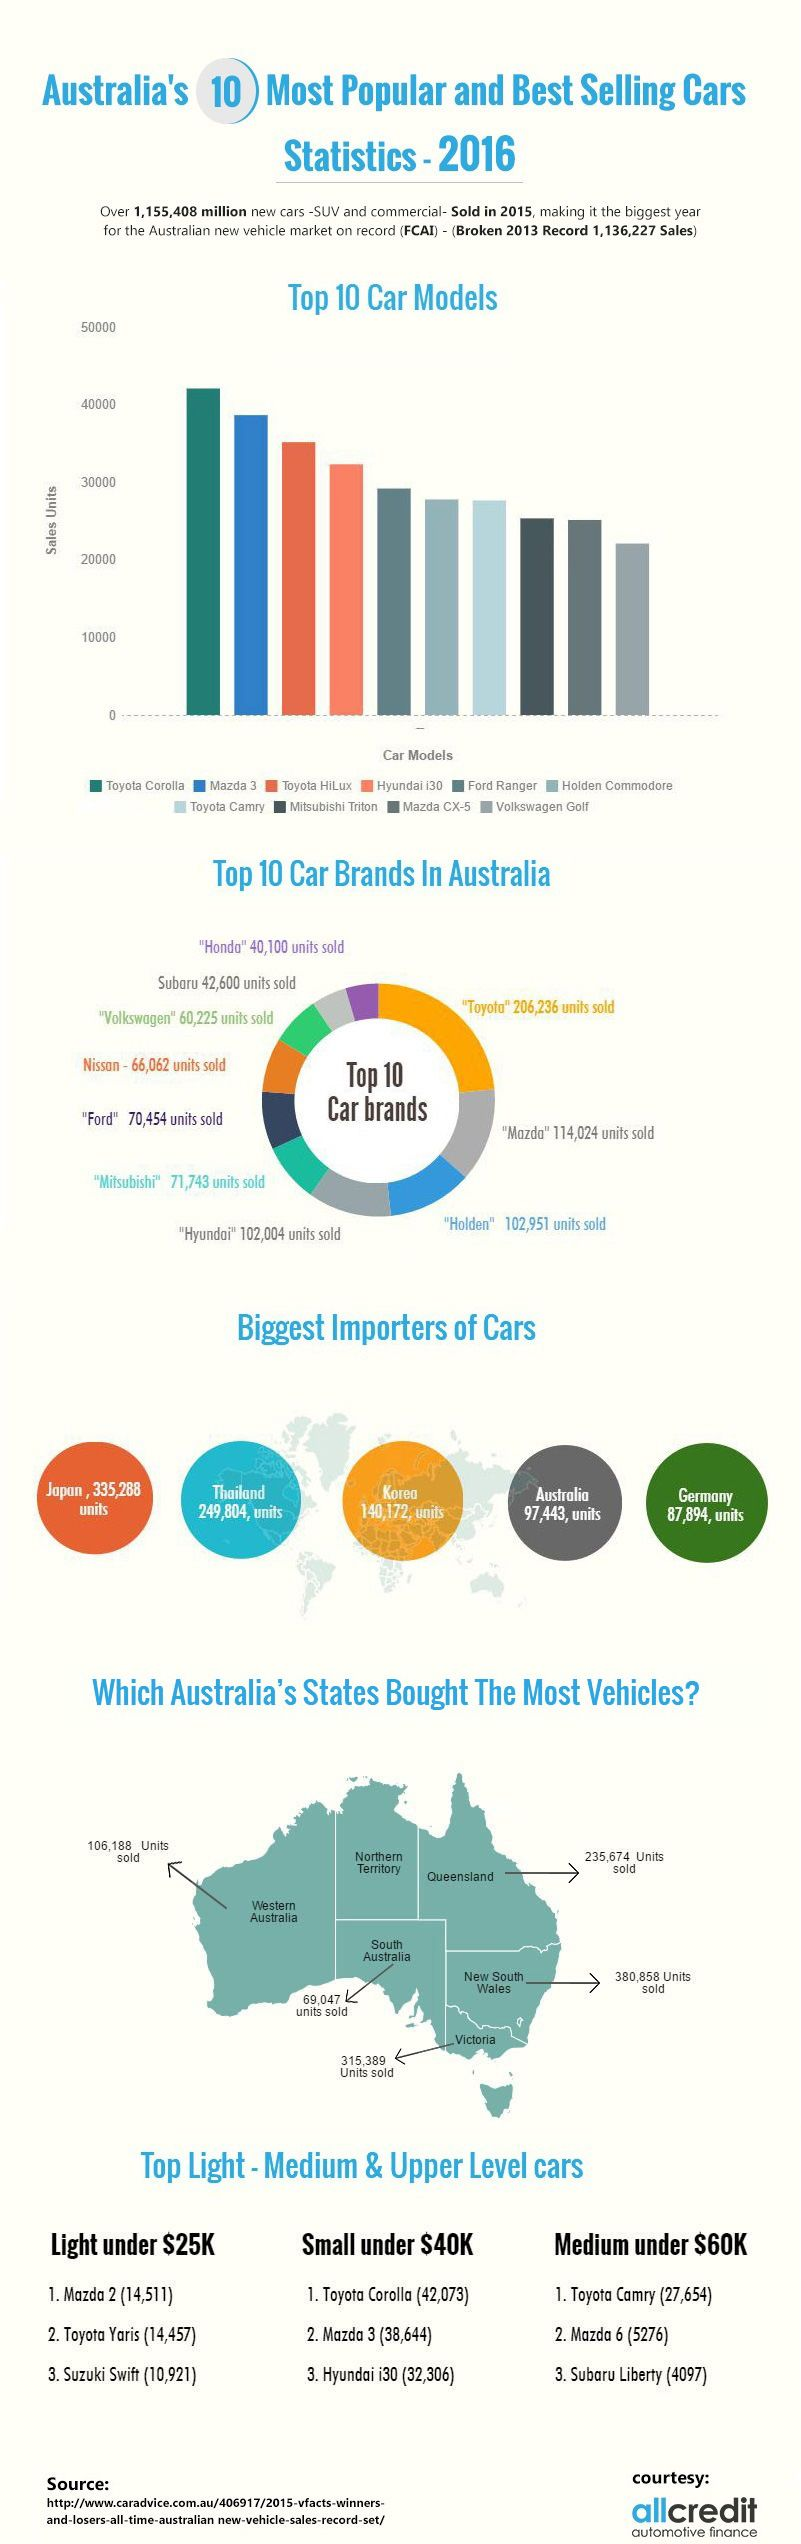 Australia's 10 Most Popular and Best Selling Cars – Statistics 2016